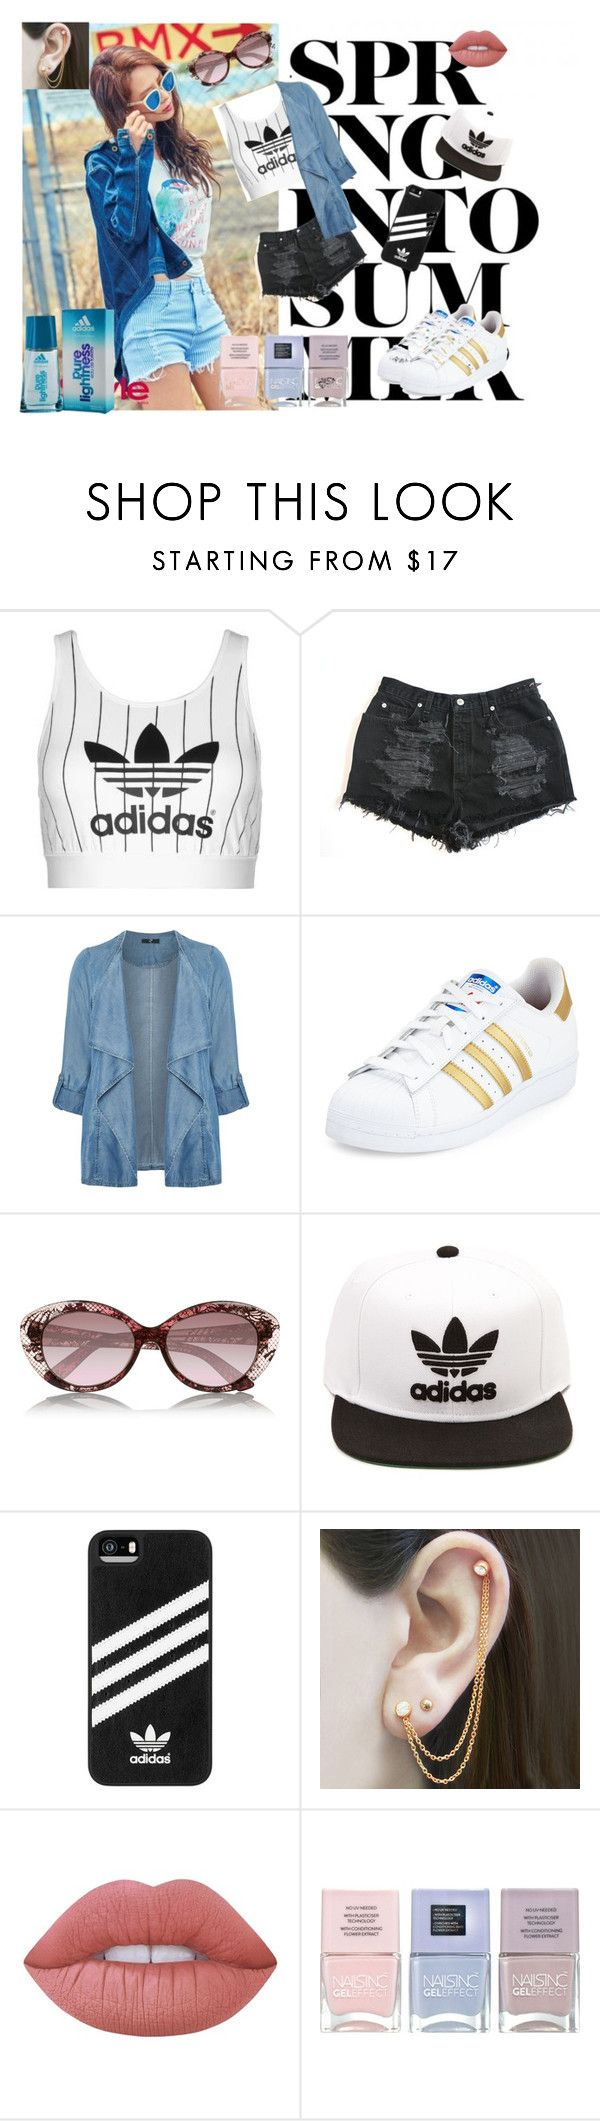 """""""Miss Sporty"""" by lujzazsu ❤ liked on Polyvore featuring adidas, Evans, Valentino, Embers Gemstone Jewellery, Lime Crime, Nails Inc., sporty and plus size clothing"""